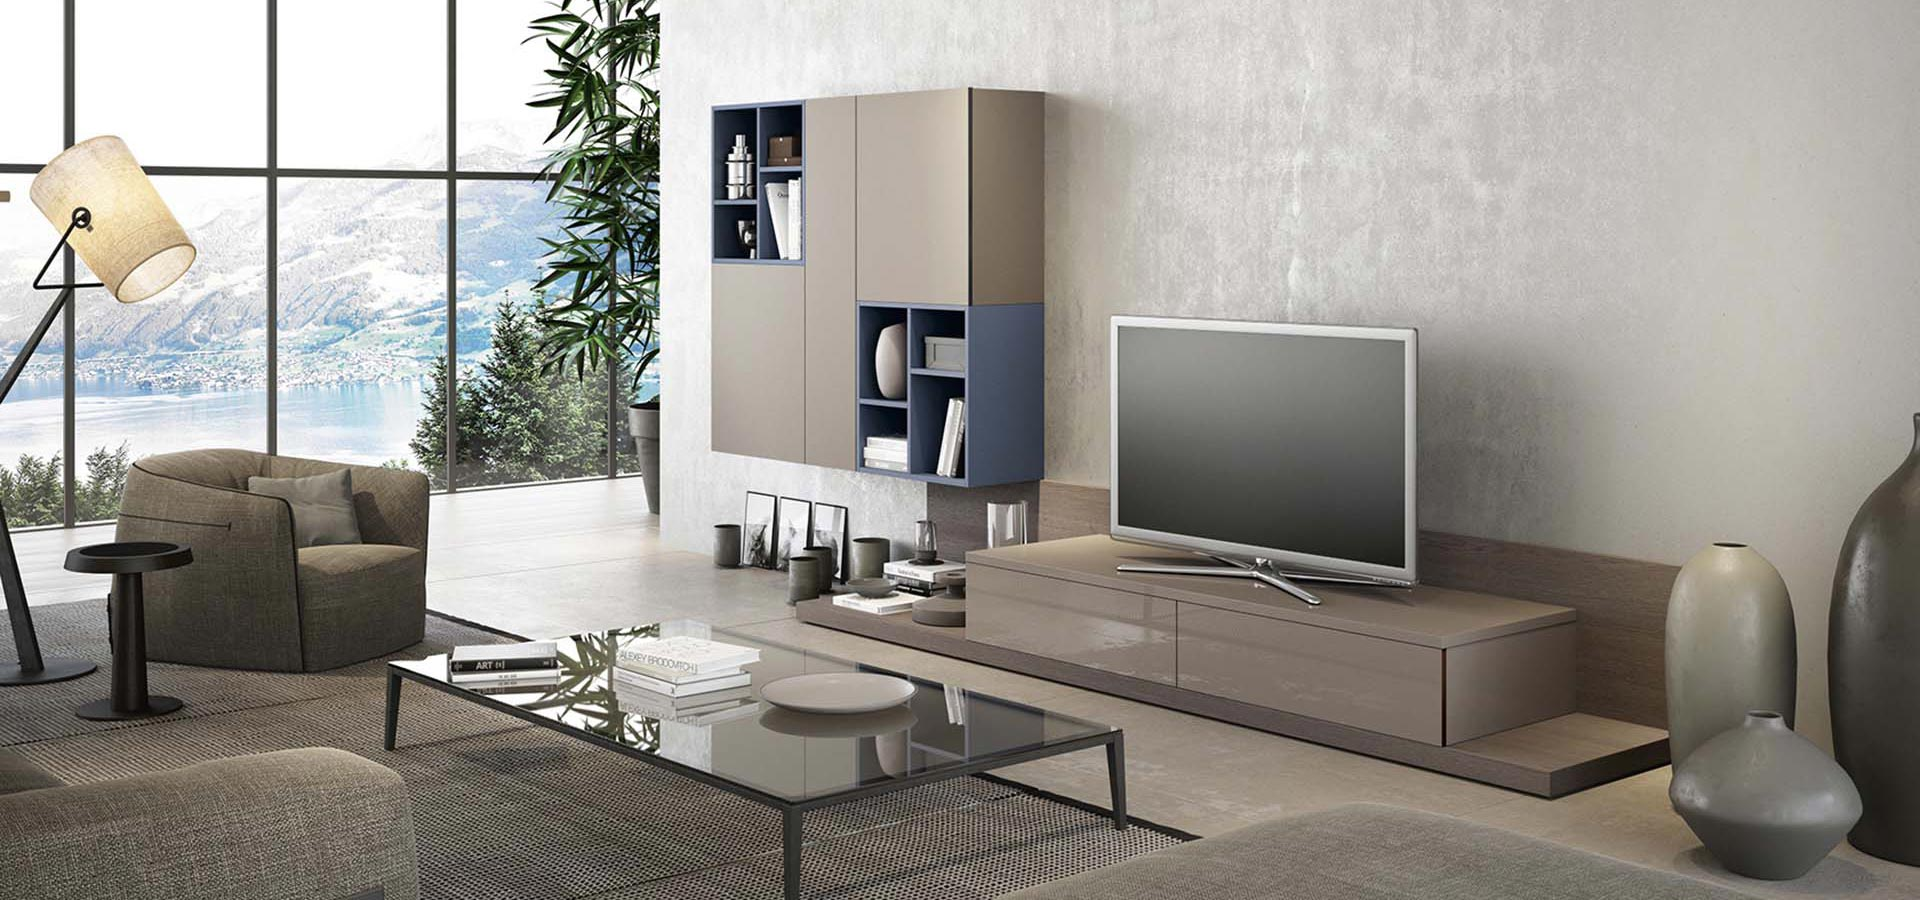 Glass 2 living room tv stand arredo3 for Sala de estar beige